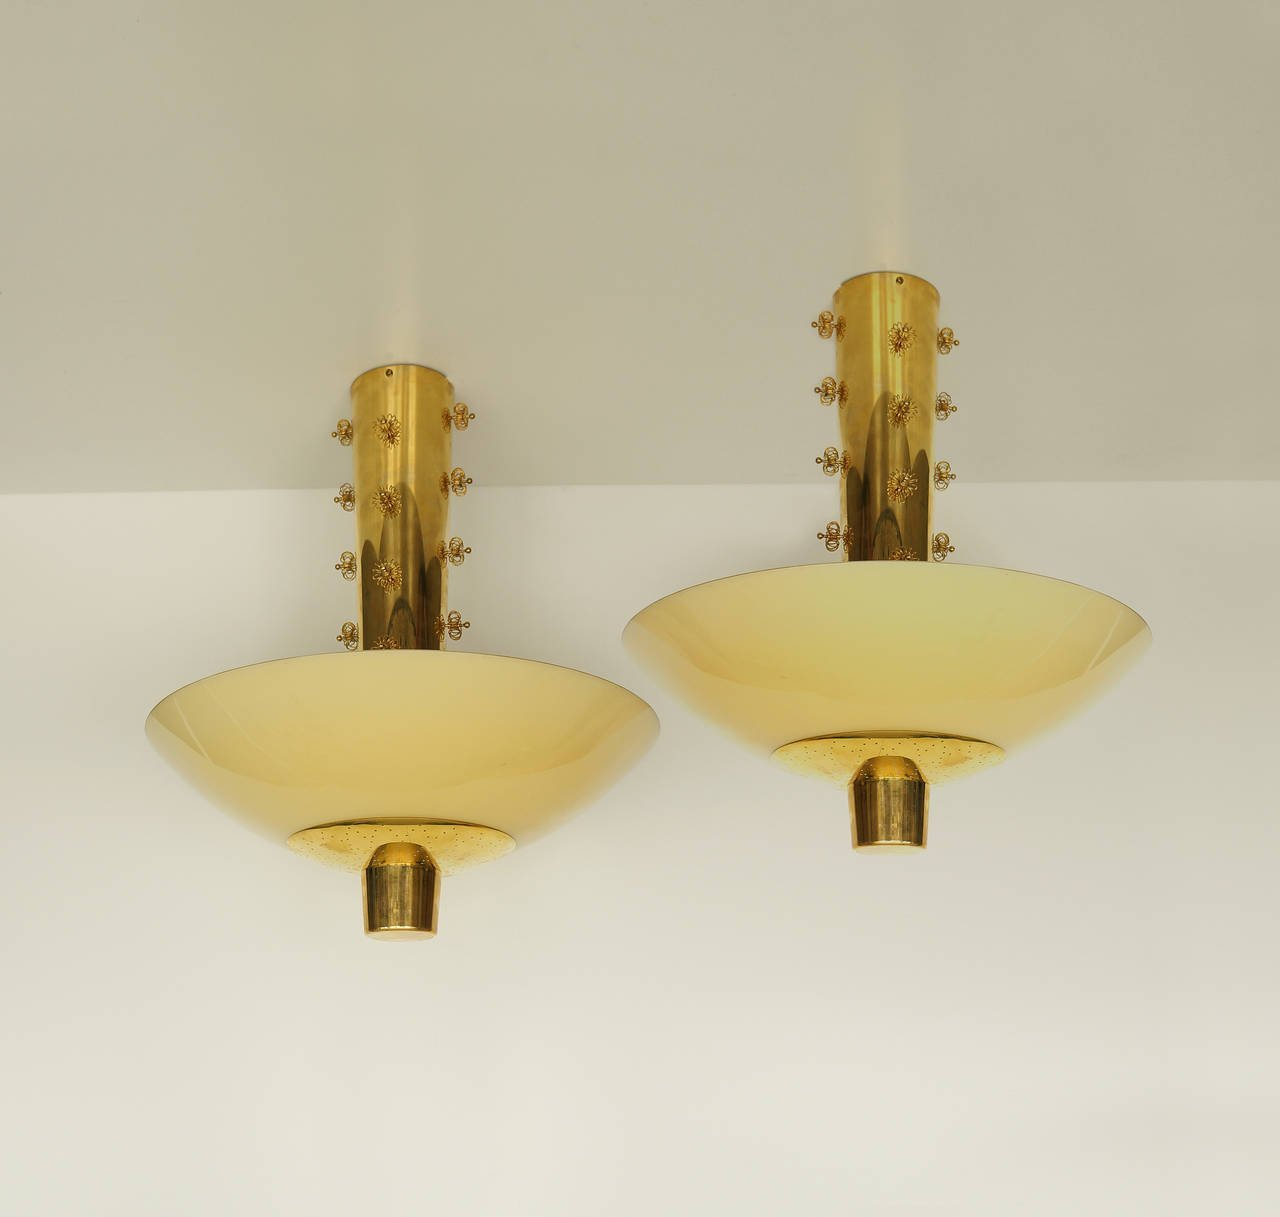 Paavo Tynell Pair of Custom Ceiling Lights for Taito Oy 1940s